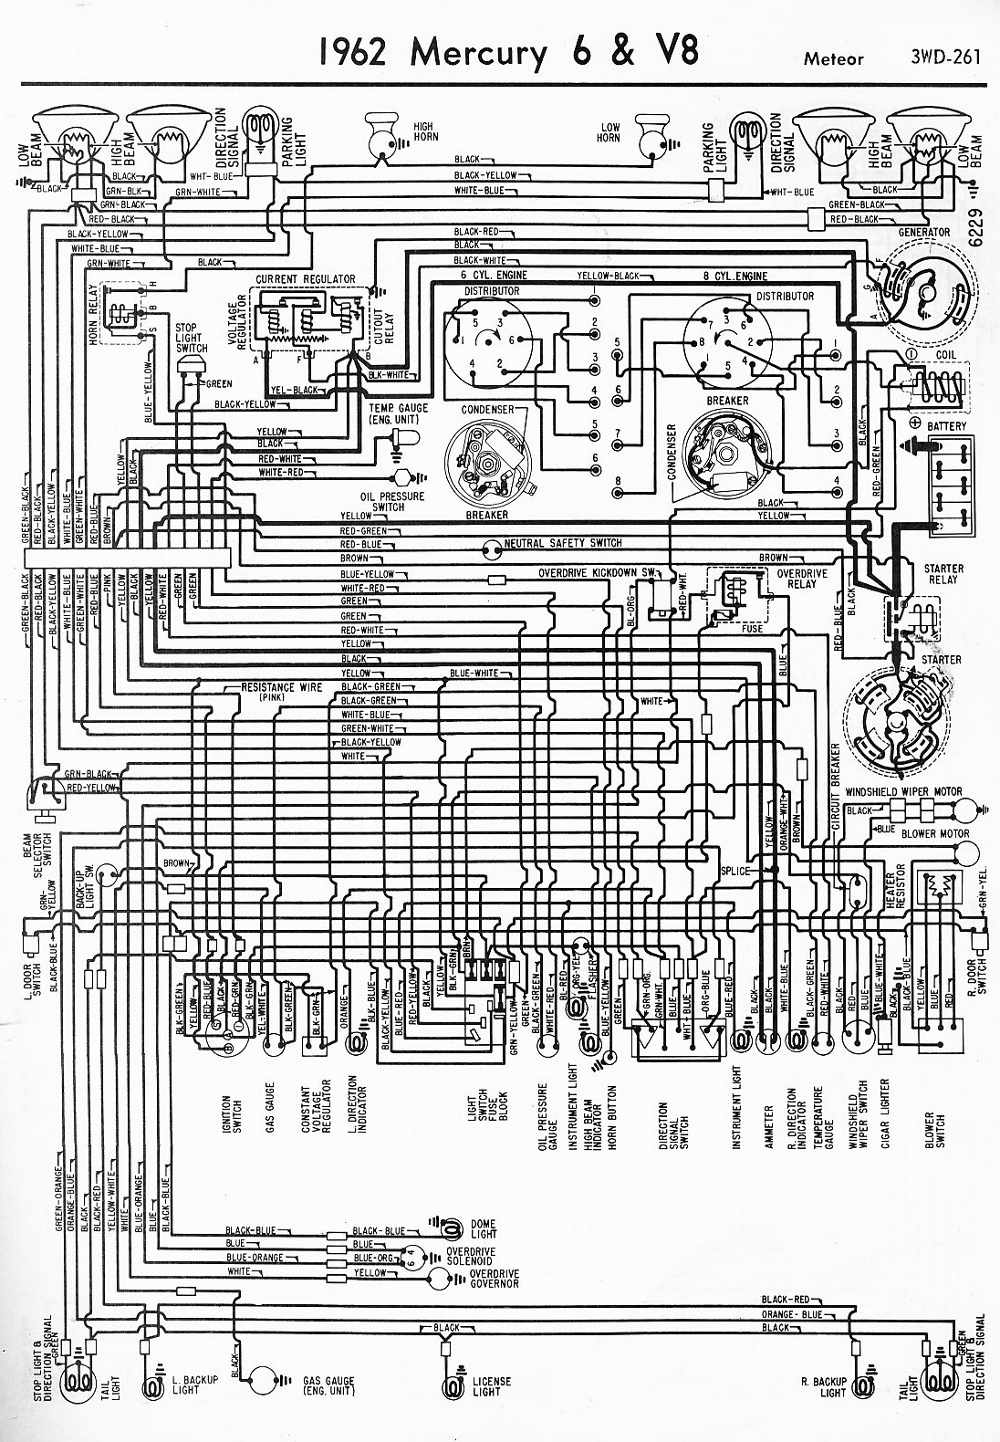 hight resolution of 1966 mercury park lane wiring diagram simple wiring post rh 29 asiagourmet igb de 1966 mercury montclair 1968 mercury park lane brougham